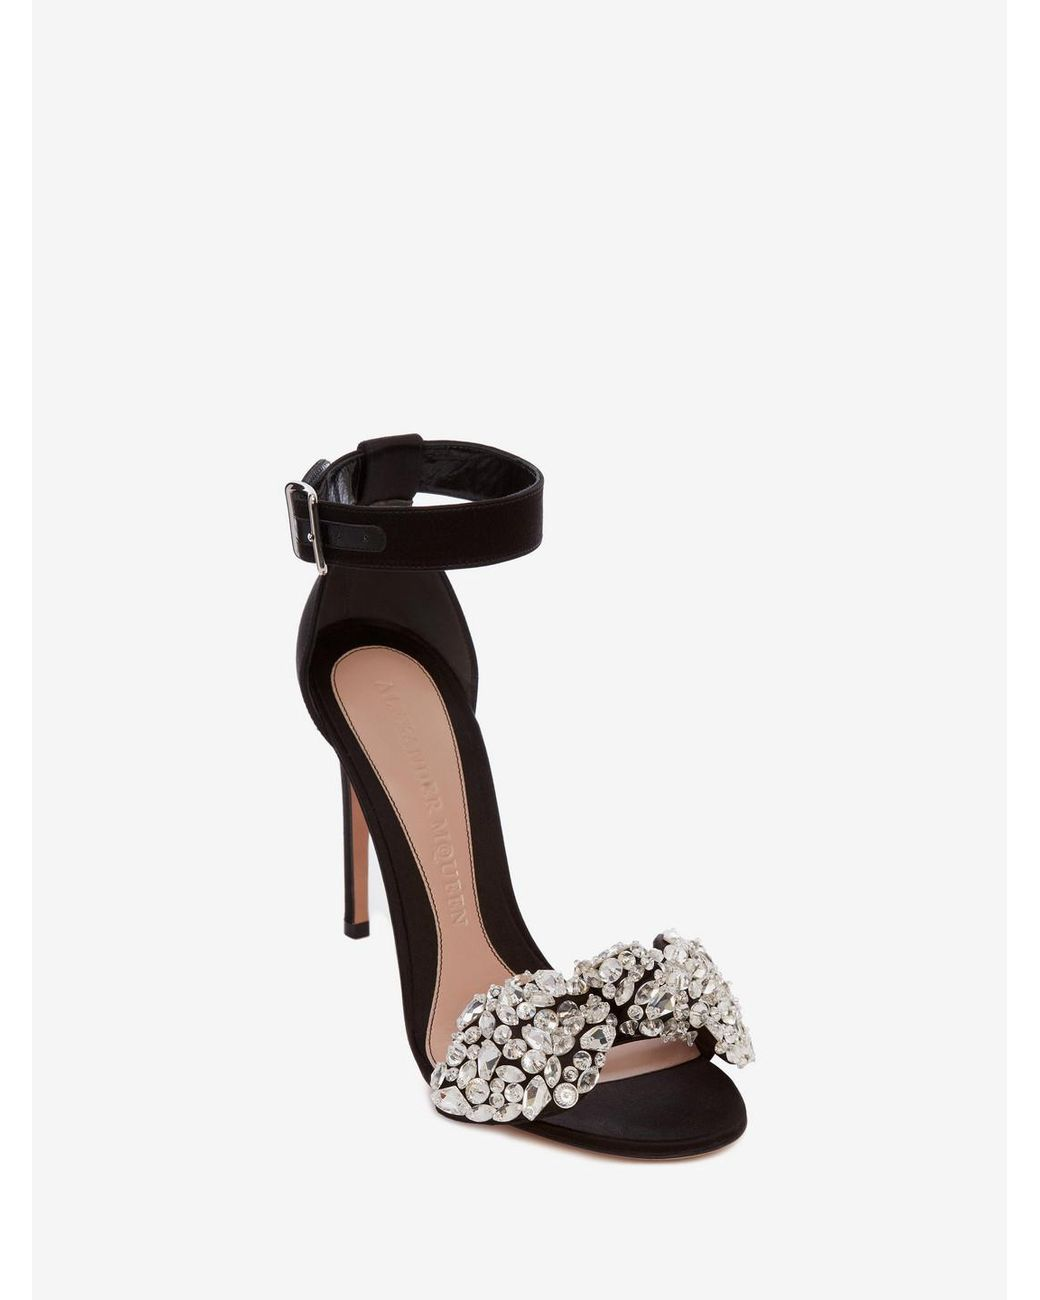 5727bbb4a04 Alexander McQueen Black Bow Embroidered Sandal